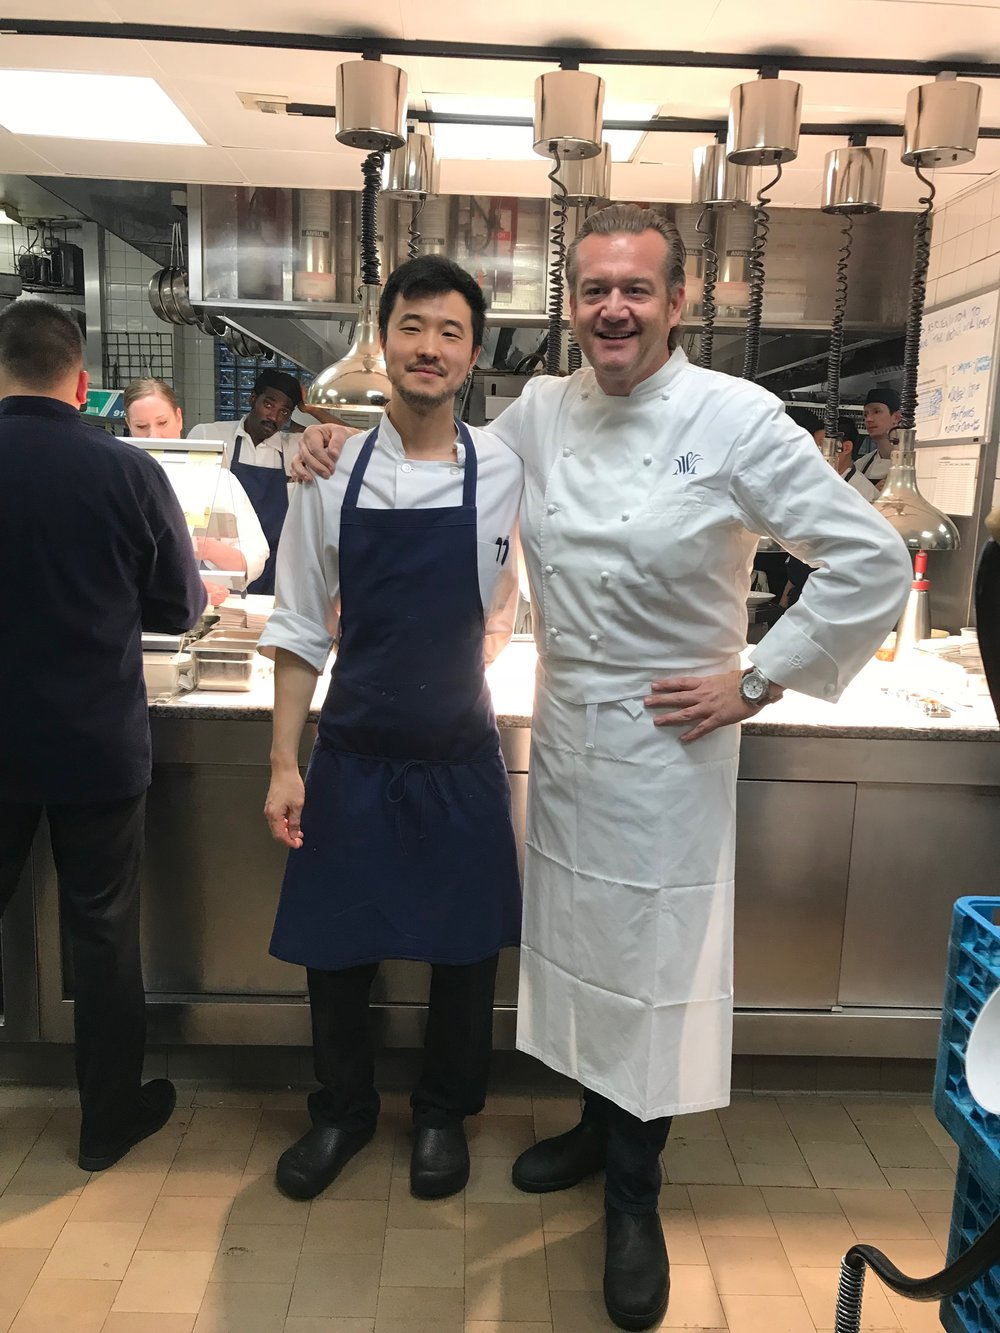 Maro with his mentor, Chef and Owner Michael White of 2 Michelin Star Marea of New York - currently listed as the 87th best Restaurant in the world.